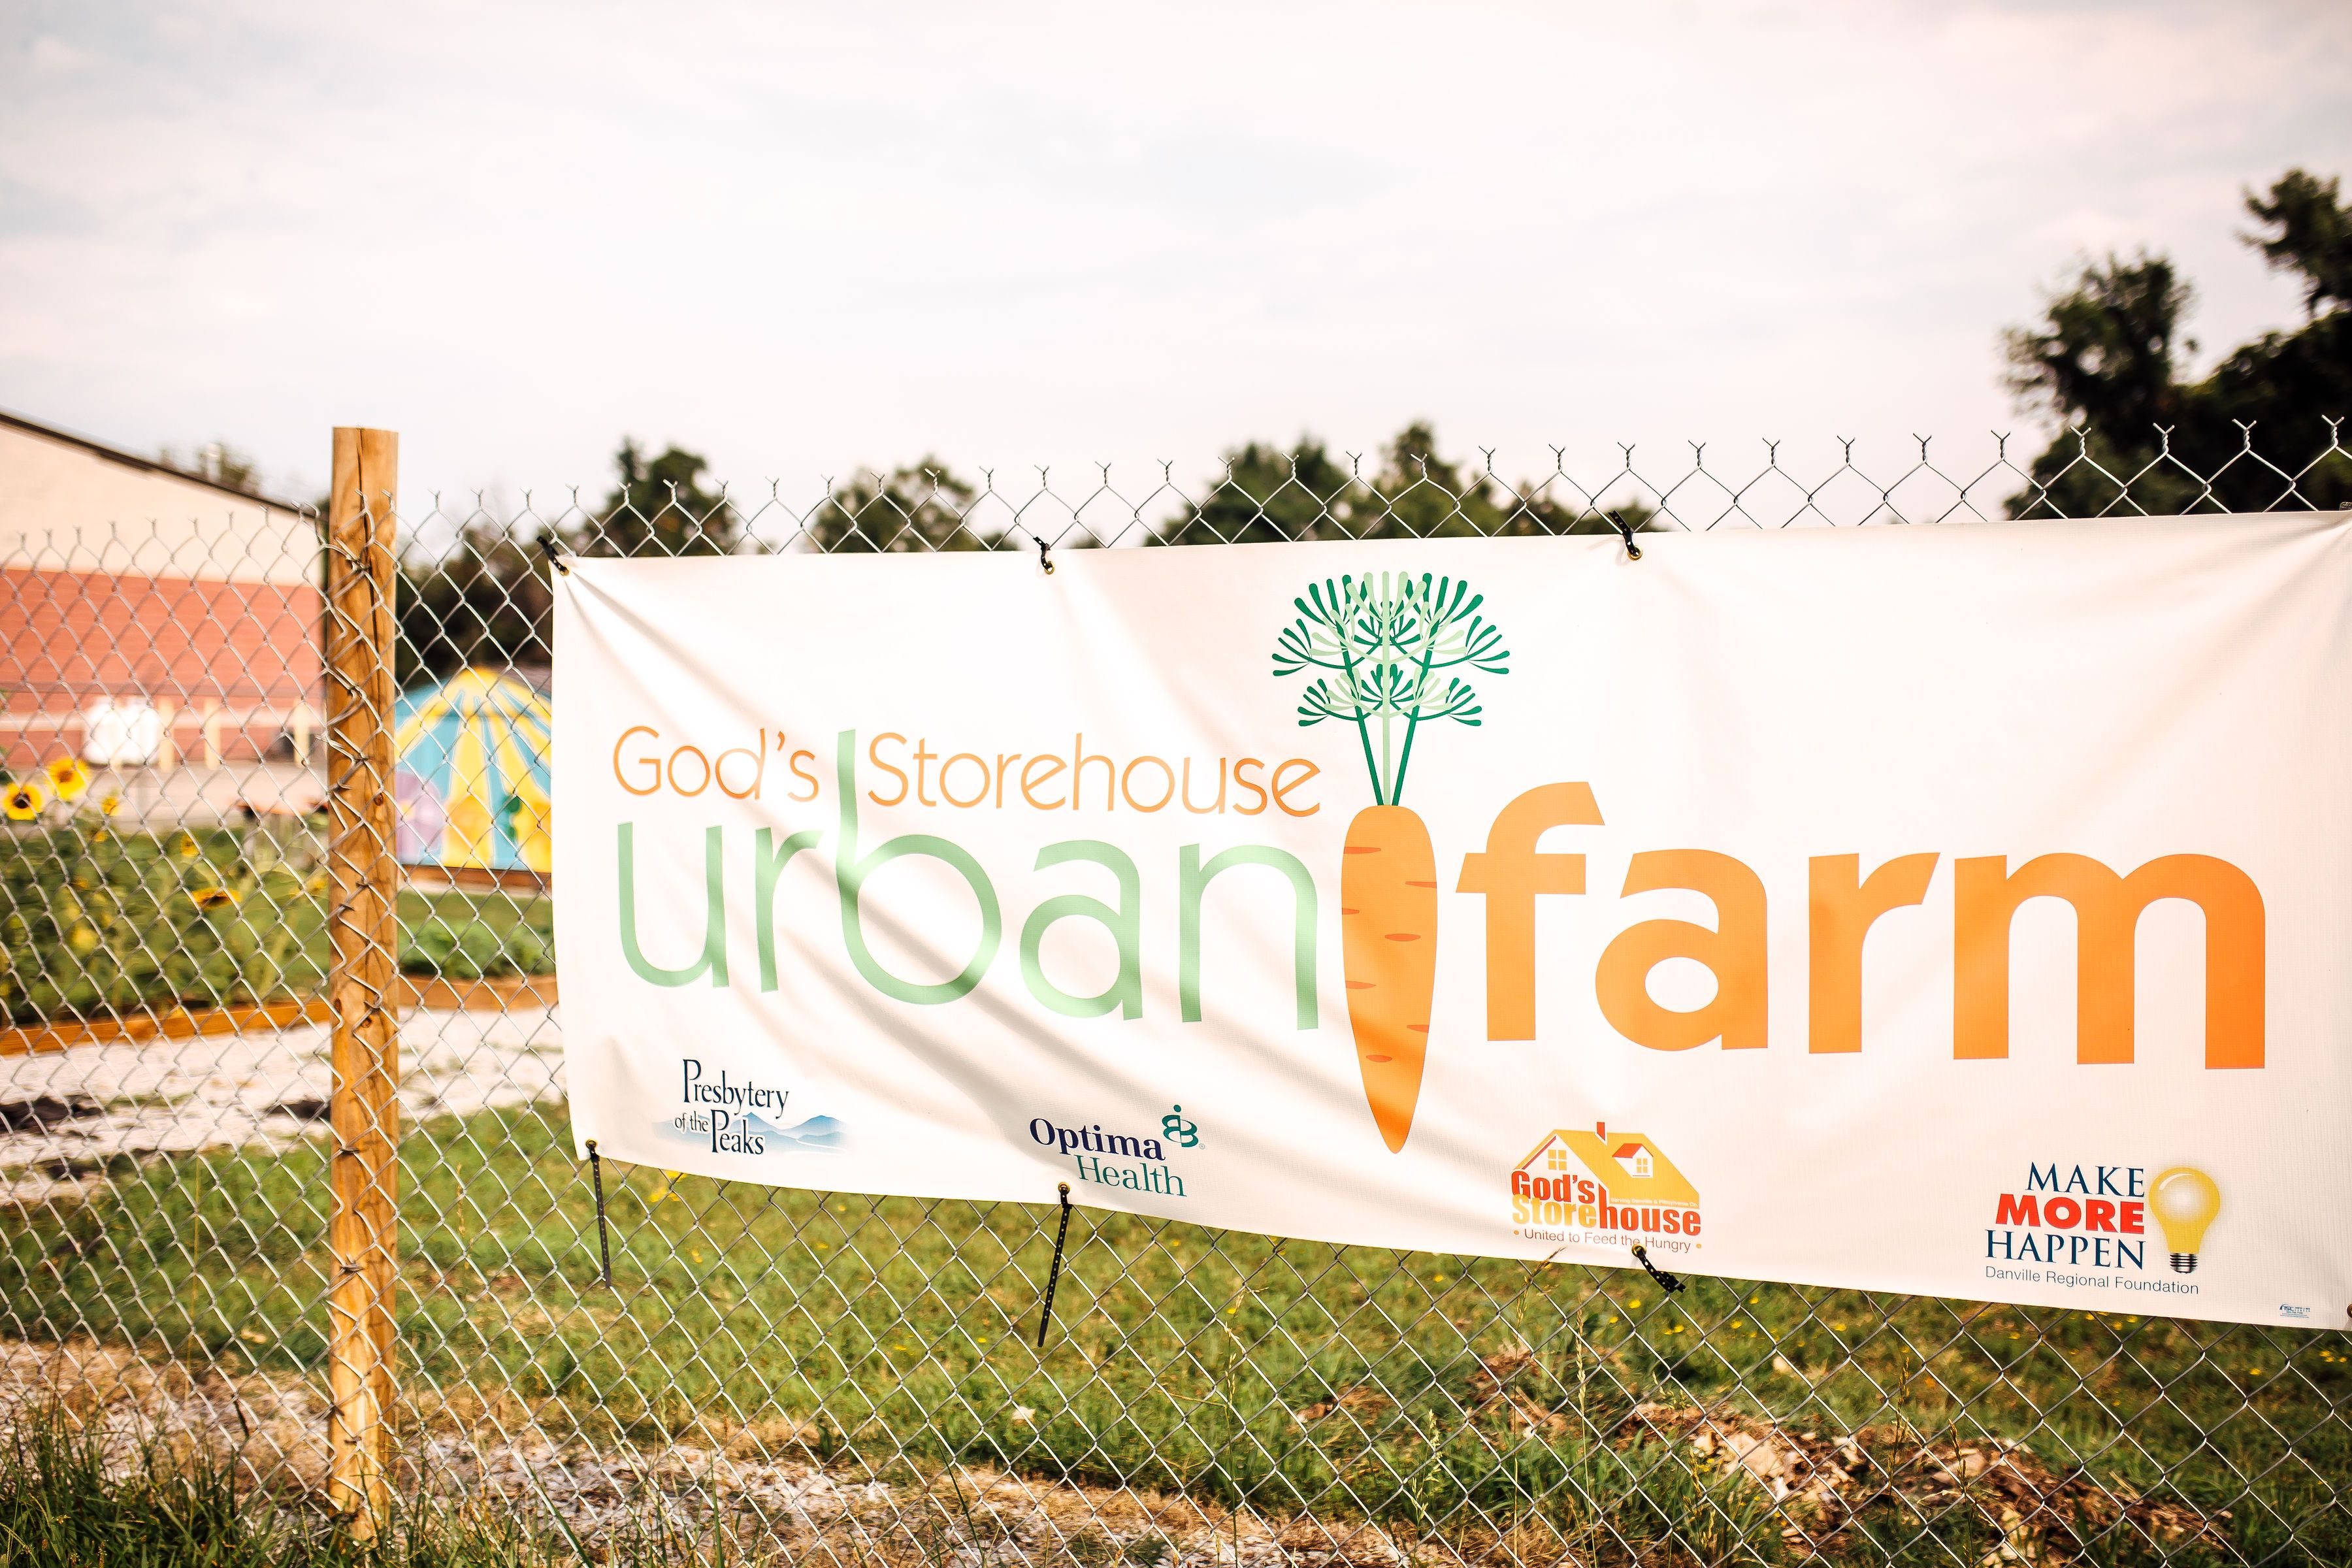 Urban Farm logo on a sign in front of the urban farm lot beside God's Storehouse